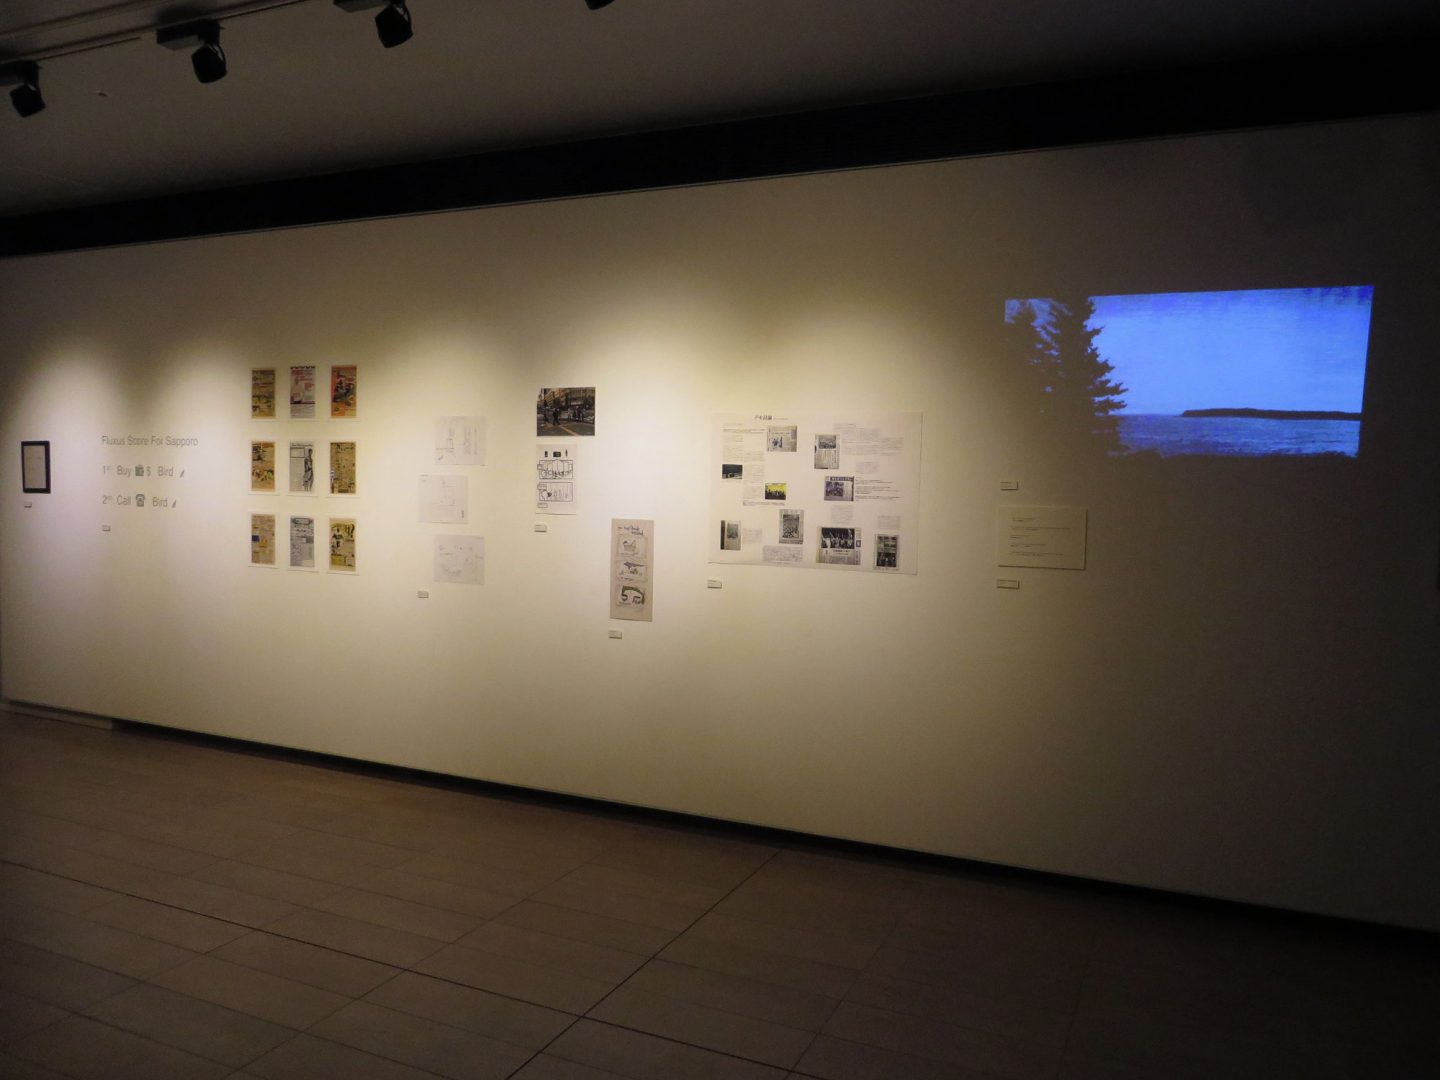 readymade-institution-sapporo-installation-view